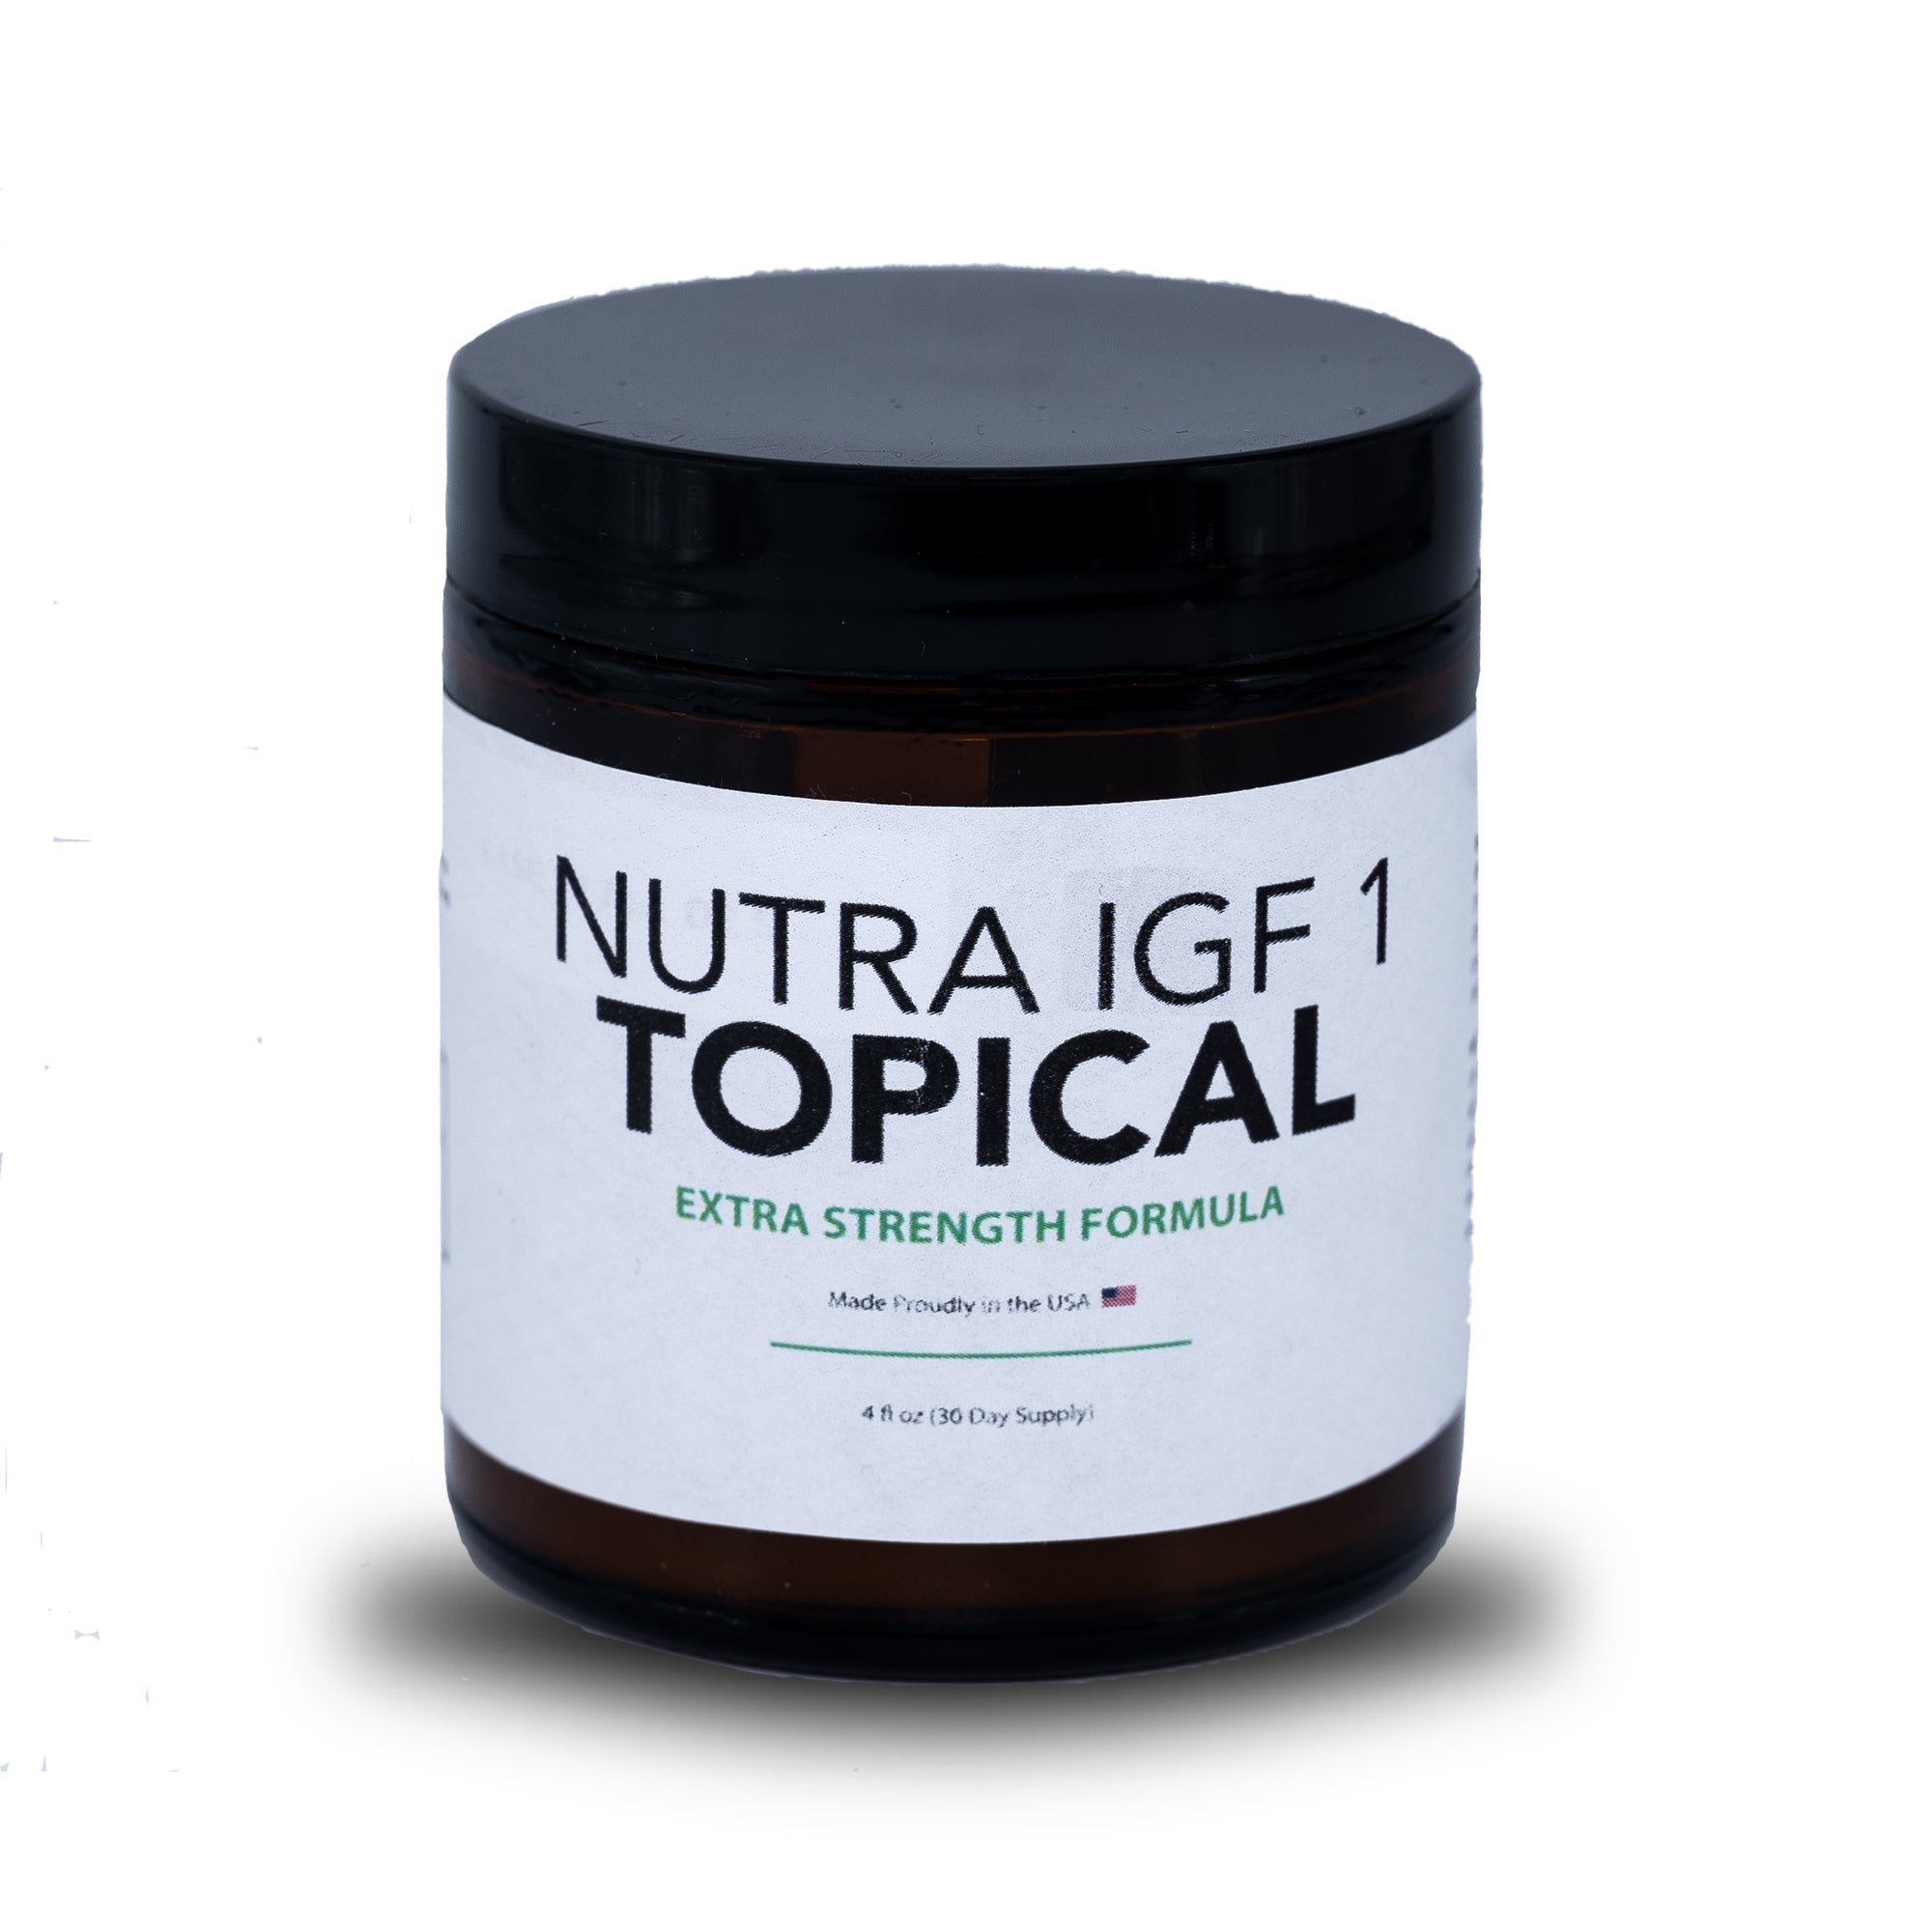 Nutra IGF 1 Topical